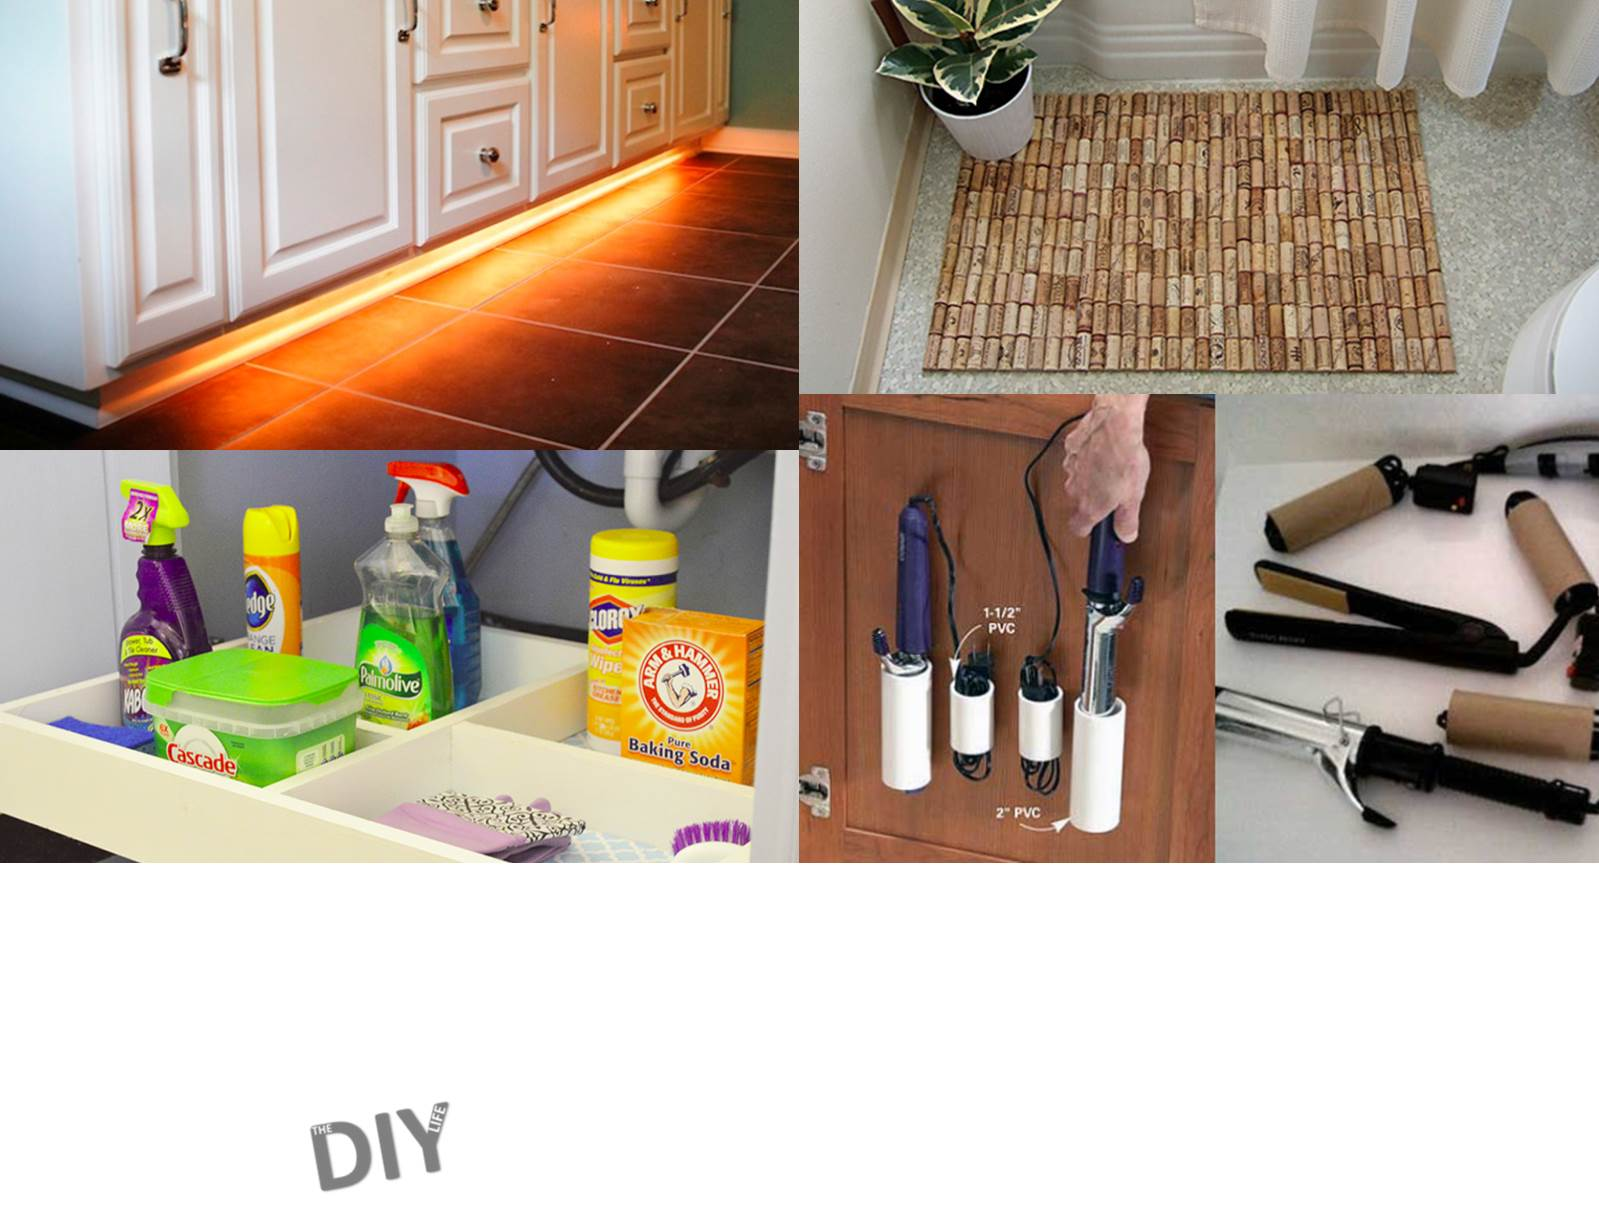 10 diy projects to update your bathroom